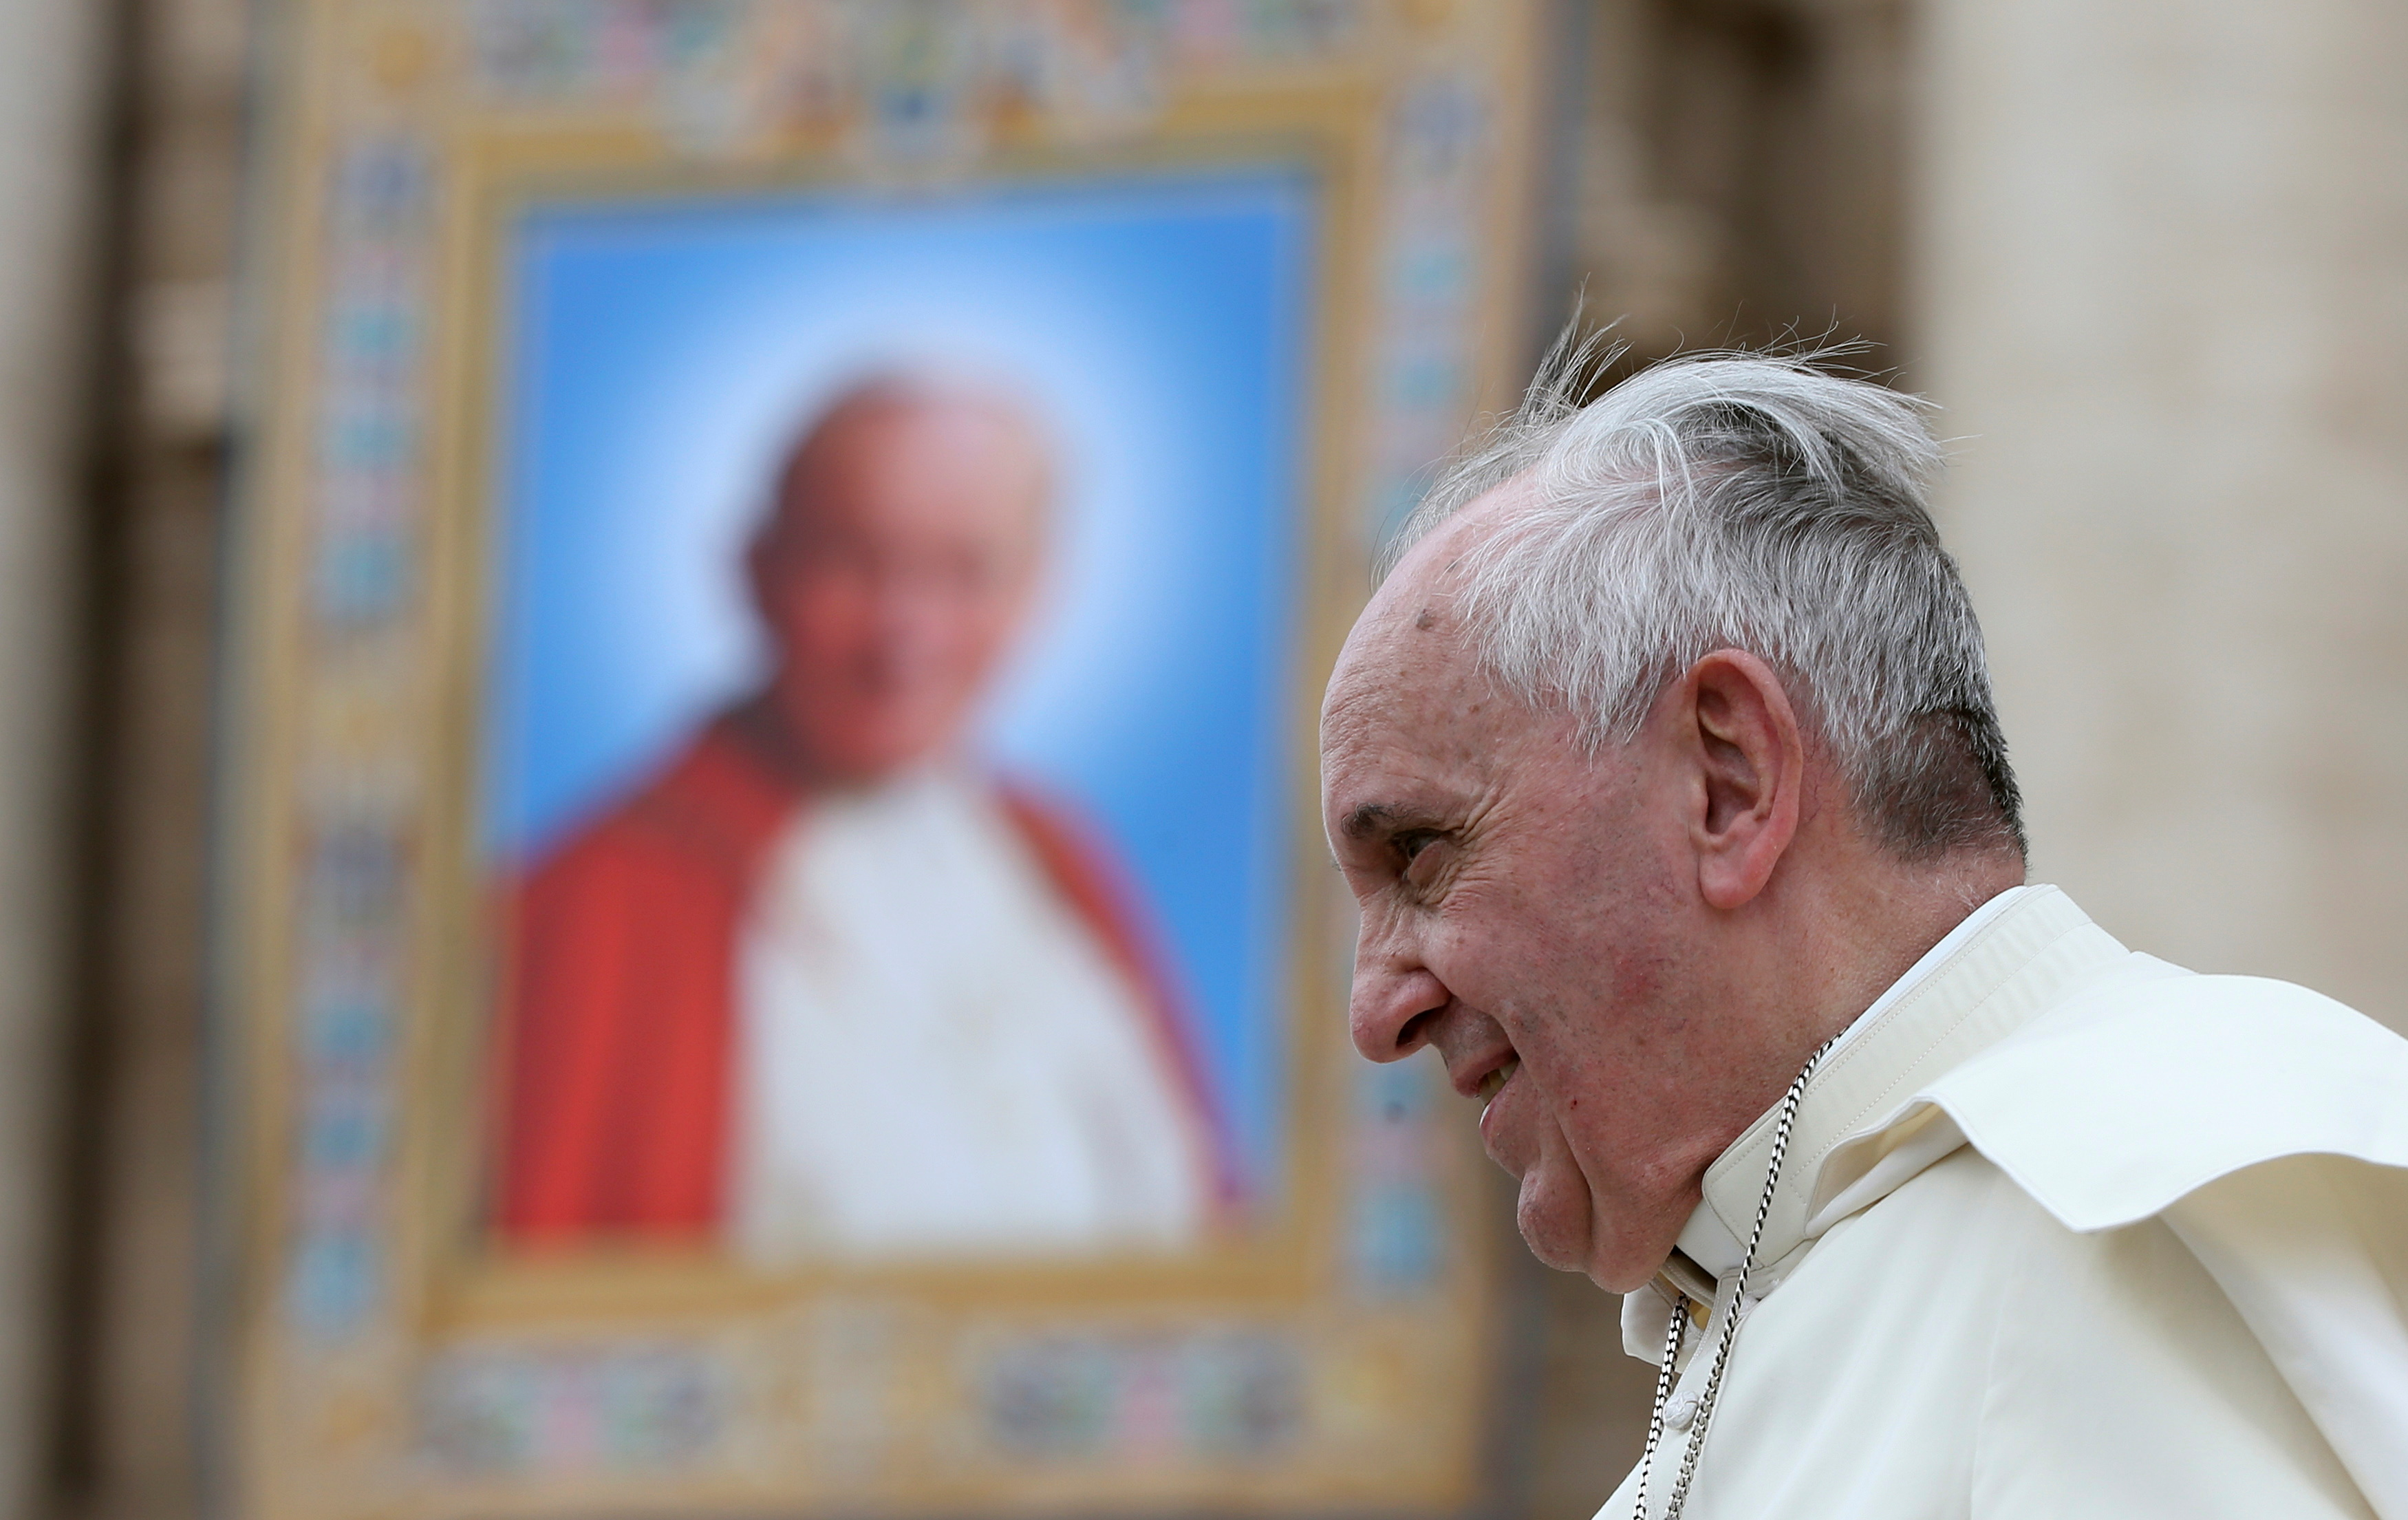 Two popes, same hospital, different styles of medical privacy